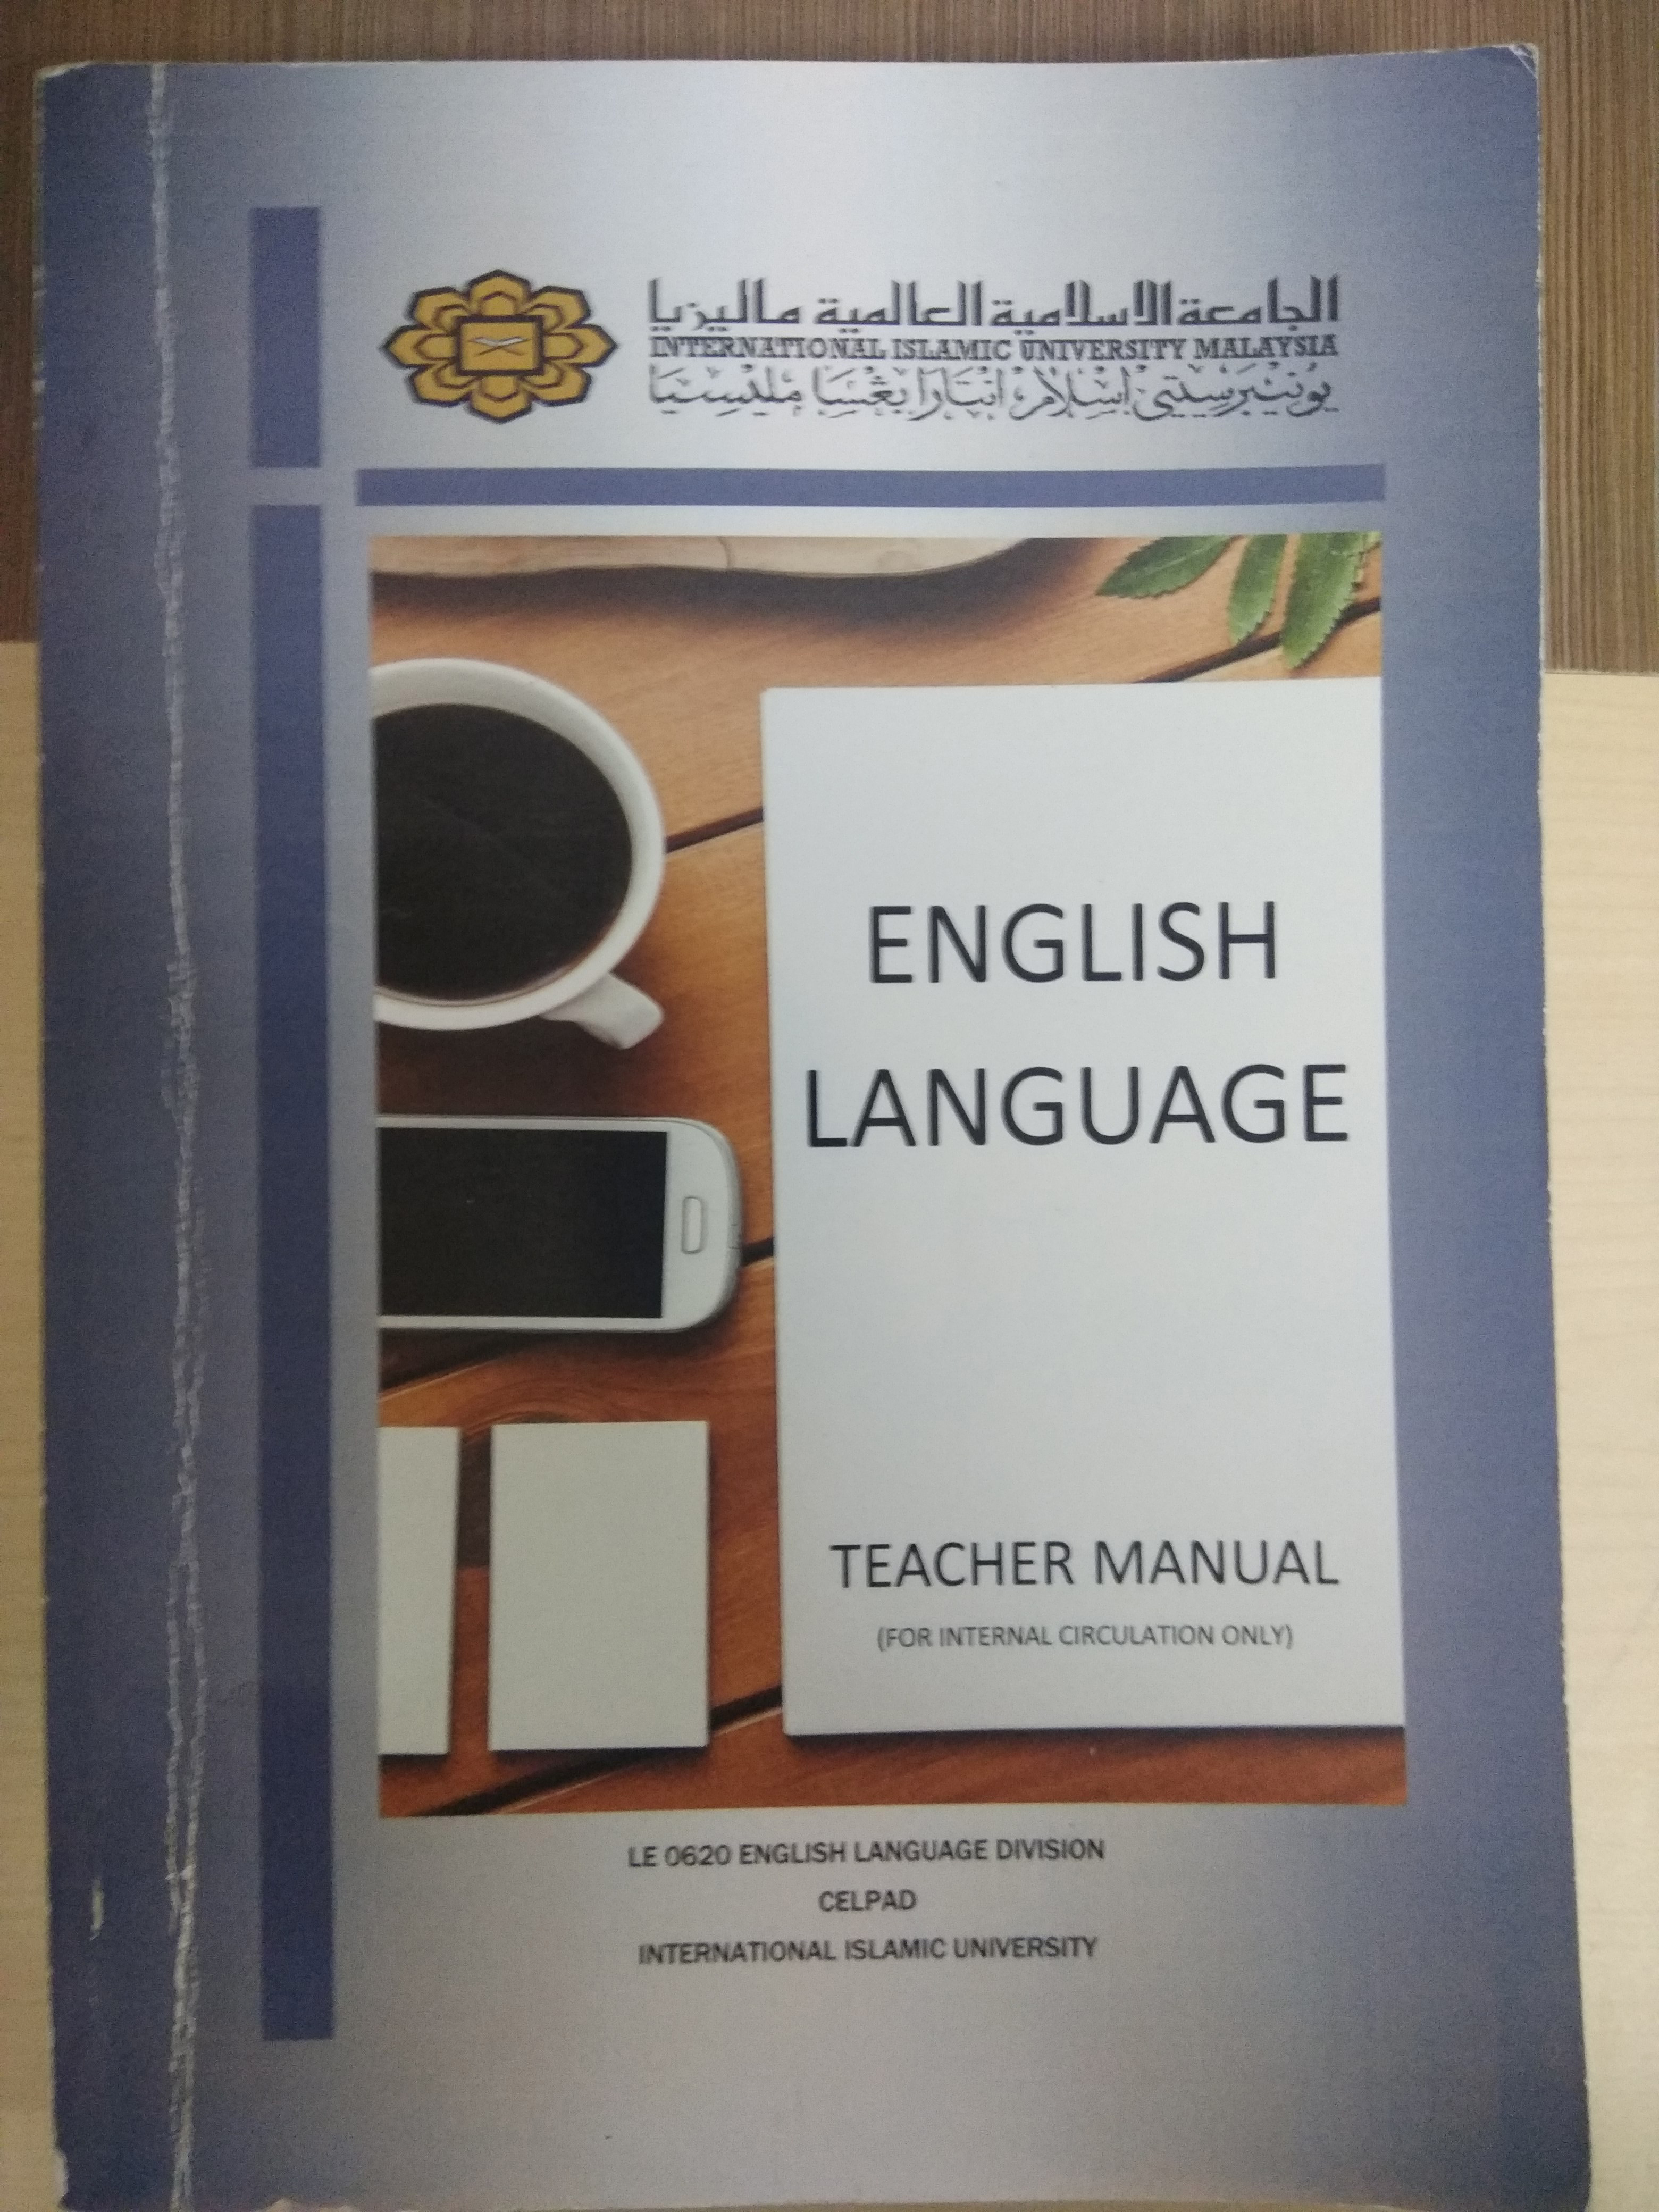 English Language (Teacher Manual)